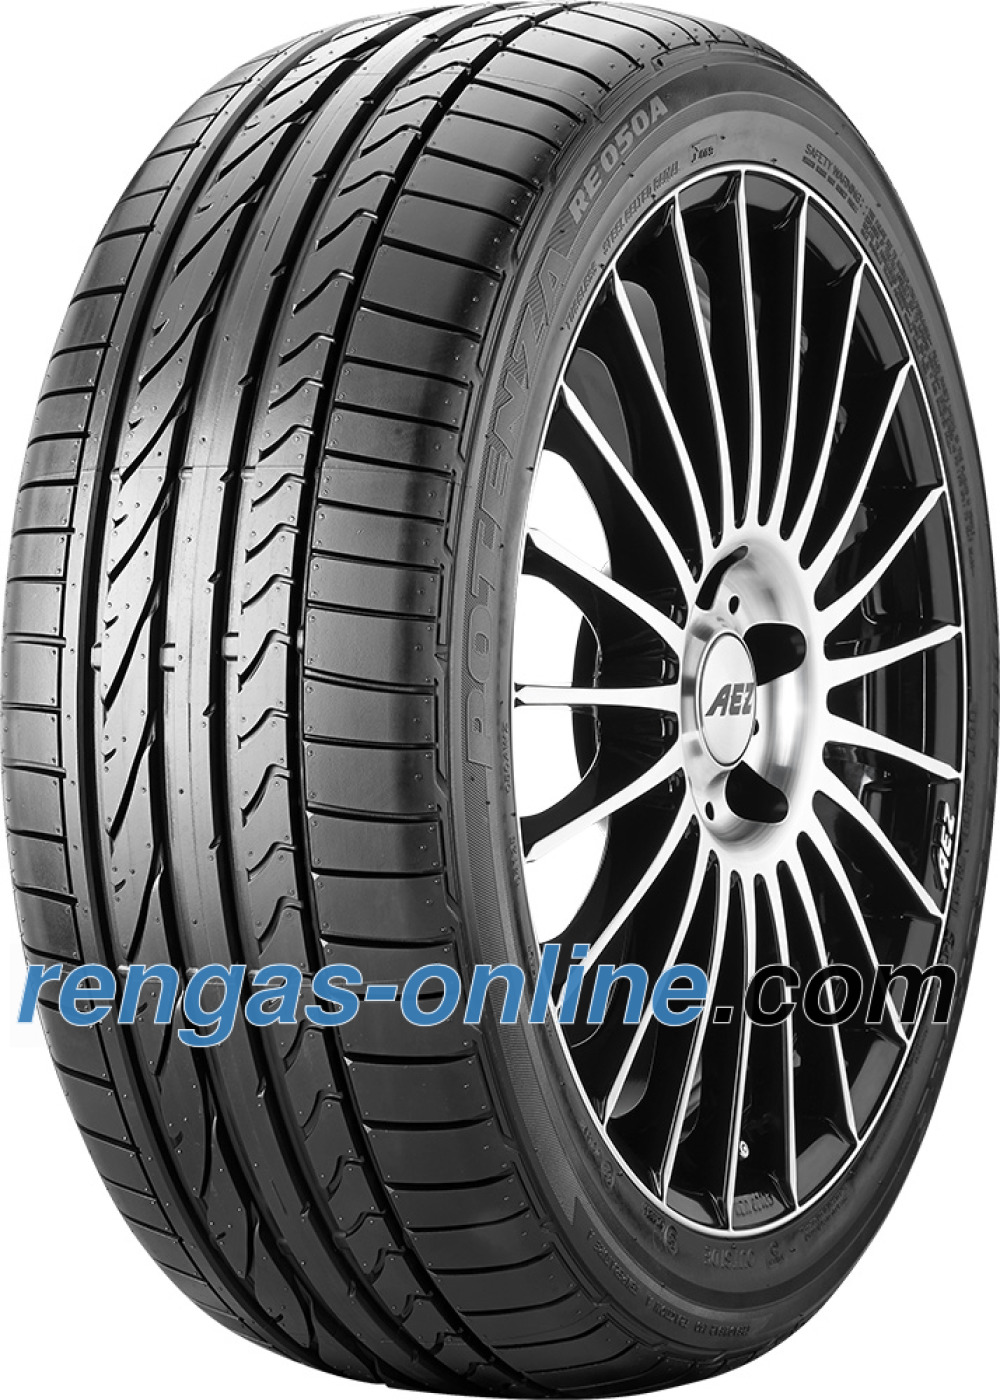 bridgestone-potenza-re-050-a-28530-zr19-98y-xl-mo